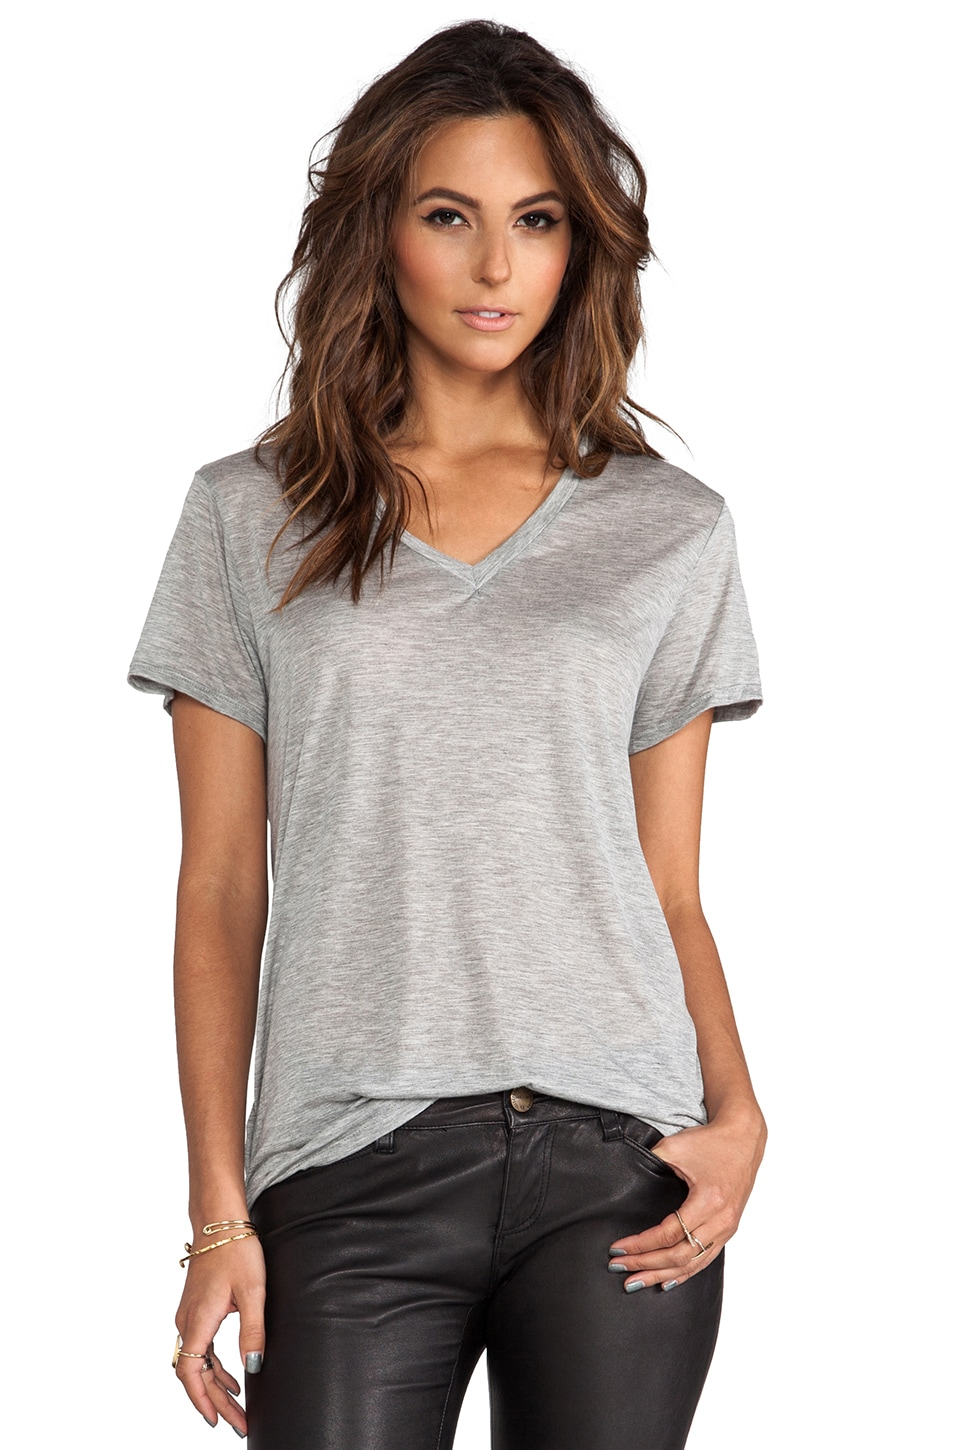 MAX FOWLES V-Neck Tee in Grey